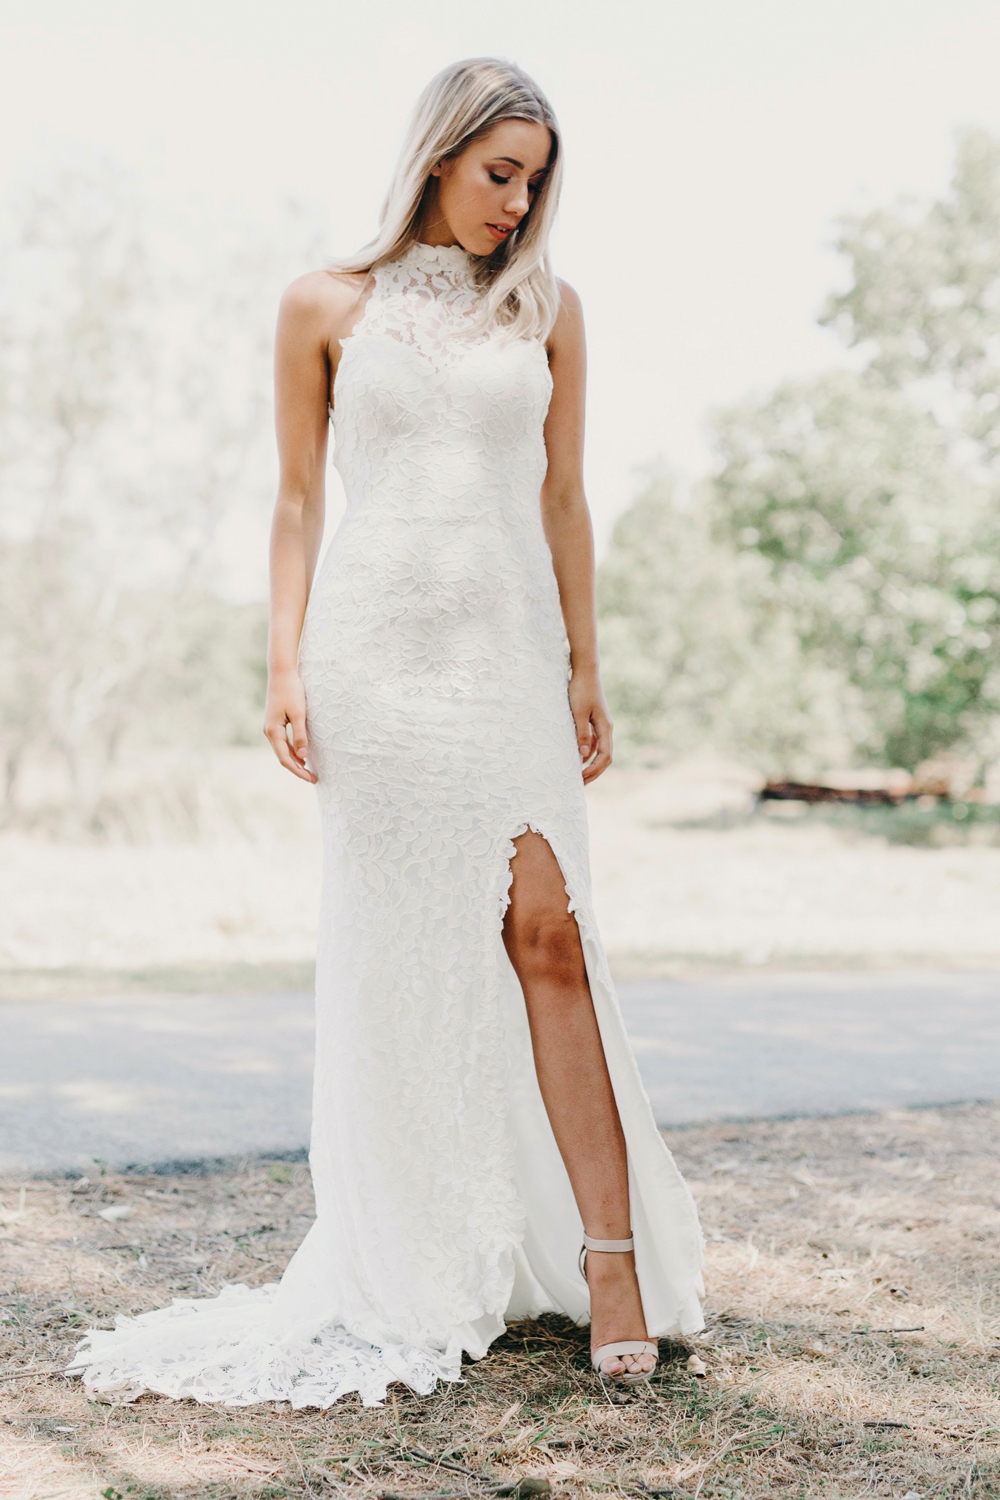 Gabriella Bridal Gown Timeless Classic Collection | Goddess By Nature